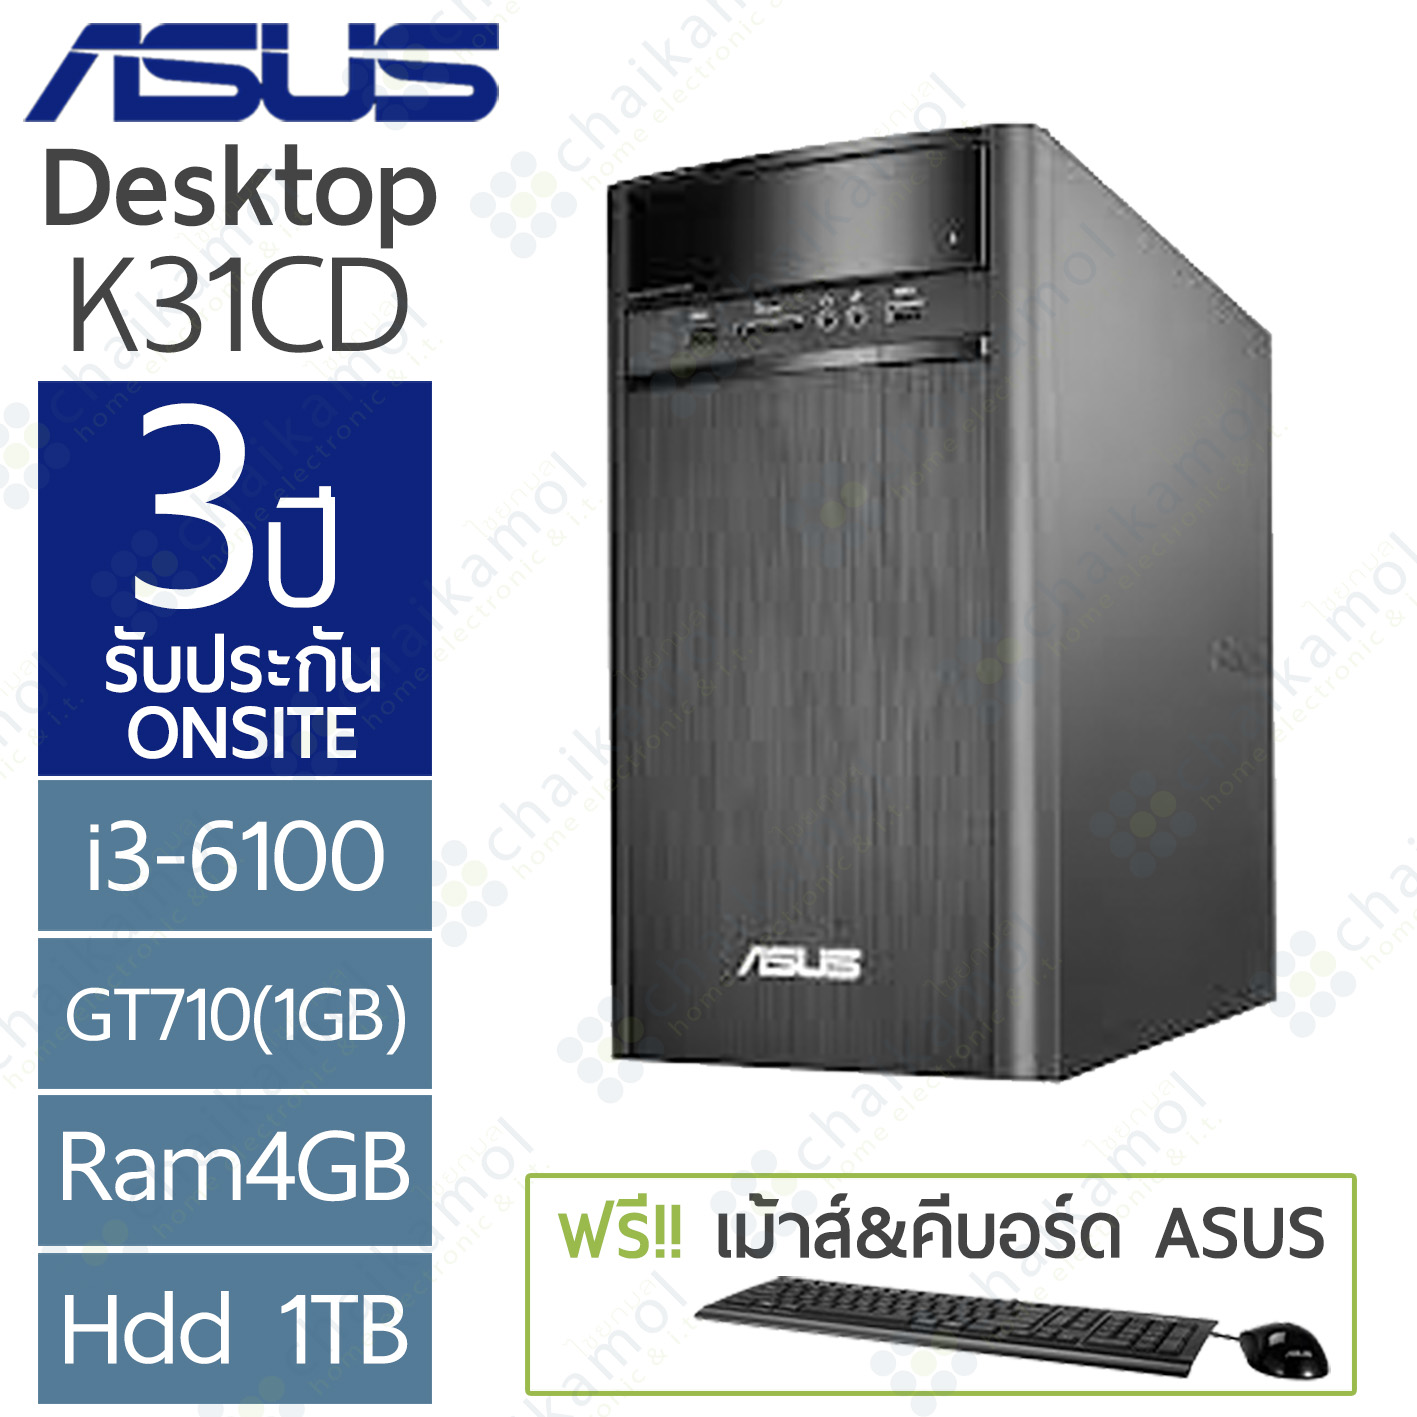 ASUS VivoPC Desktop K31CD-TH020D / i3-6100/ GT710/ 4GB/ 1TB (Black)